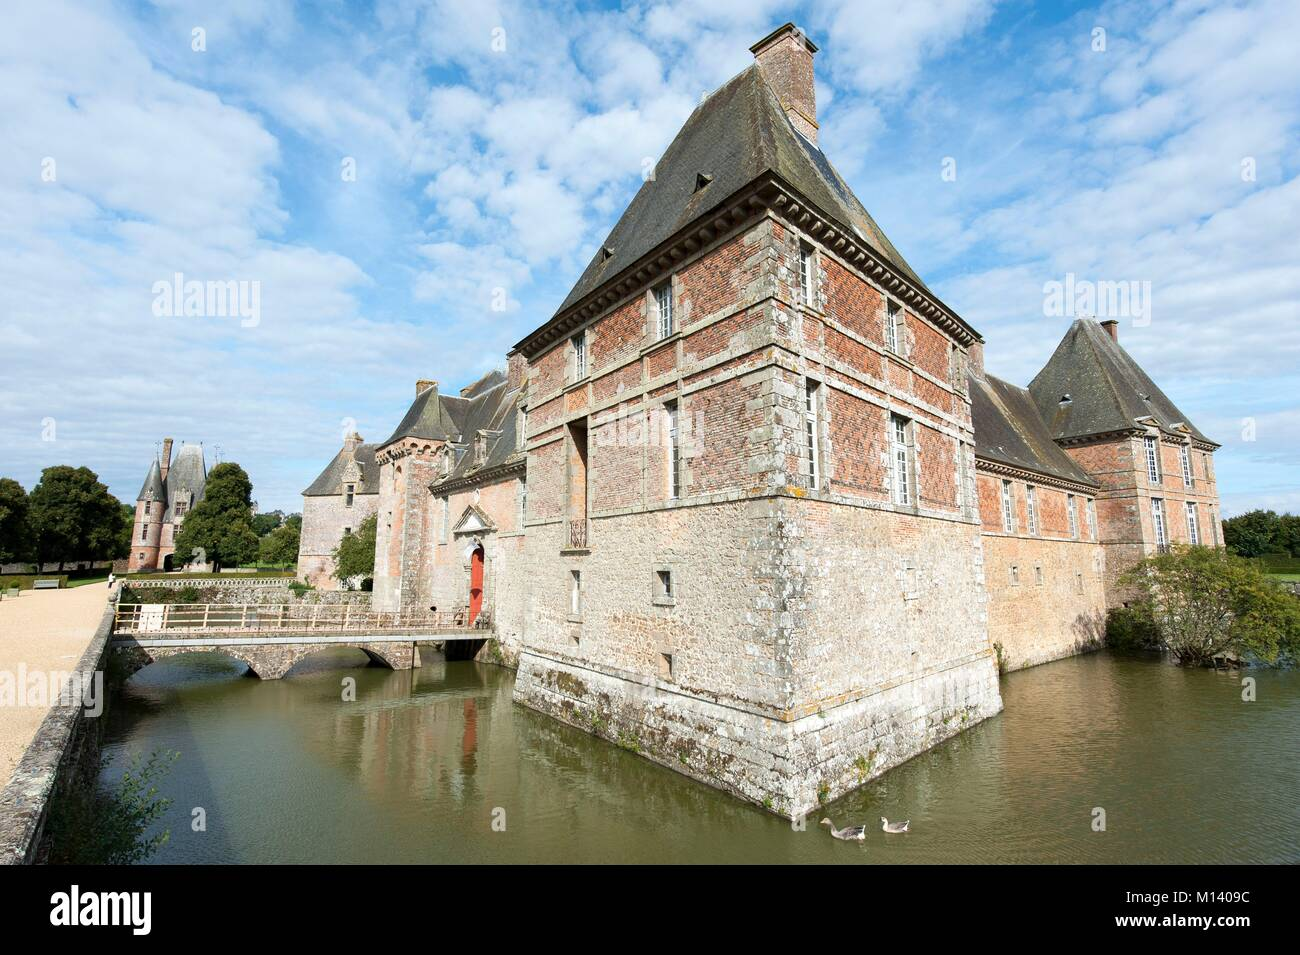 France, Orne, Carrouges, Carrouges castle and the moats - Stock Image